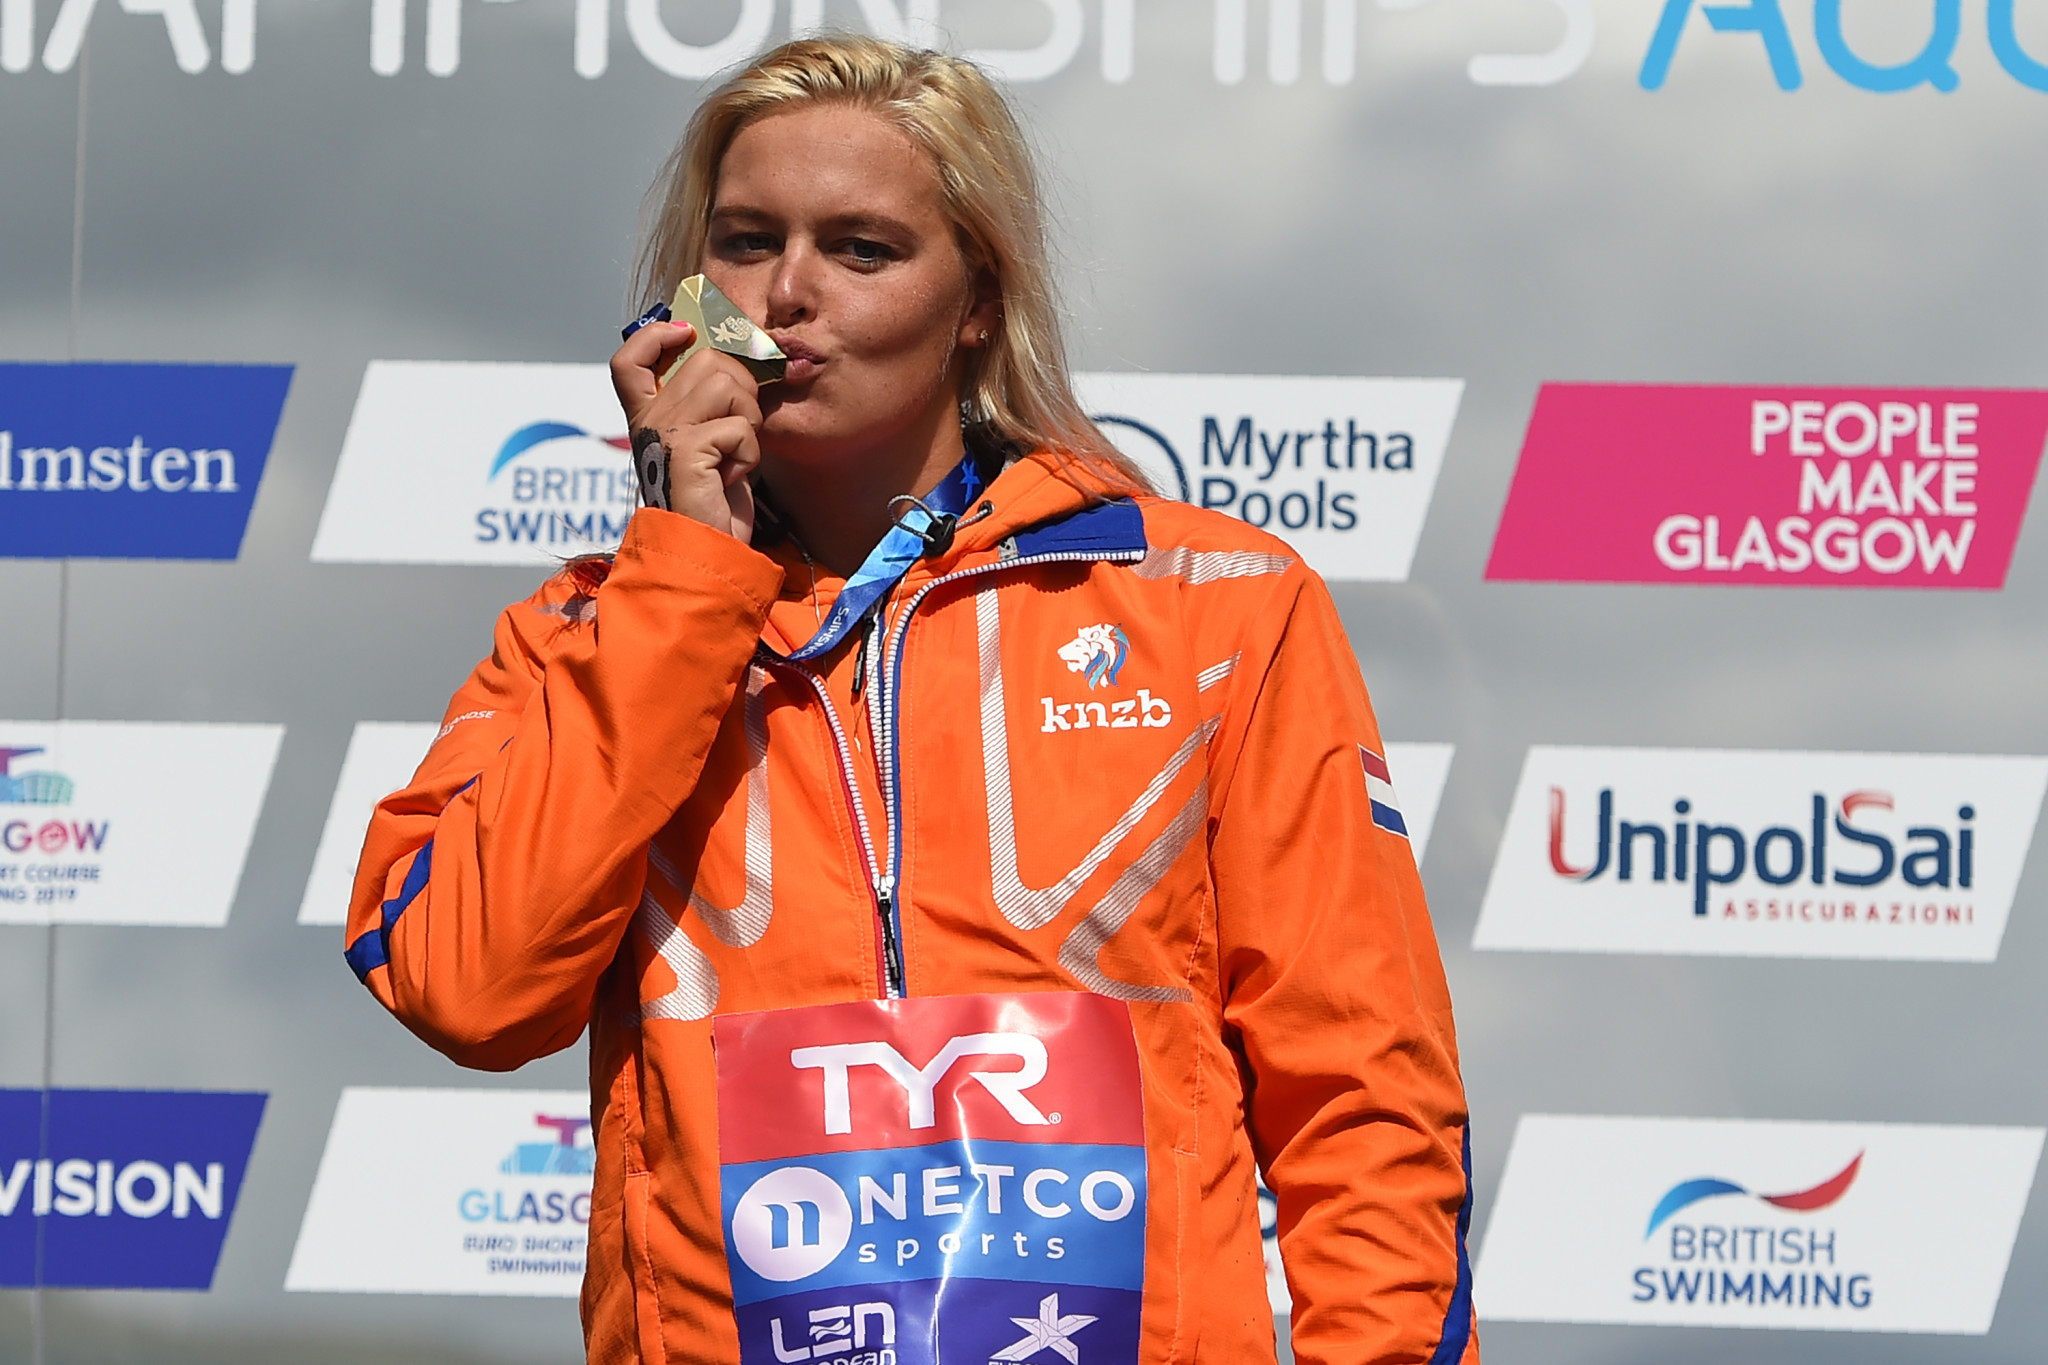 Van Rouwendaal triumphs again at European Championships as Weertman wins open water title in photo finish